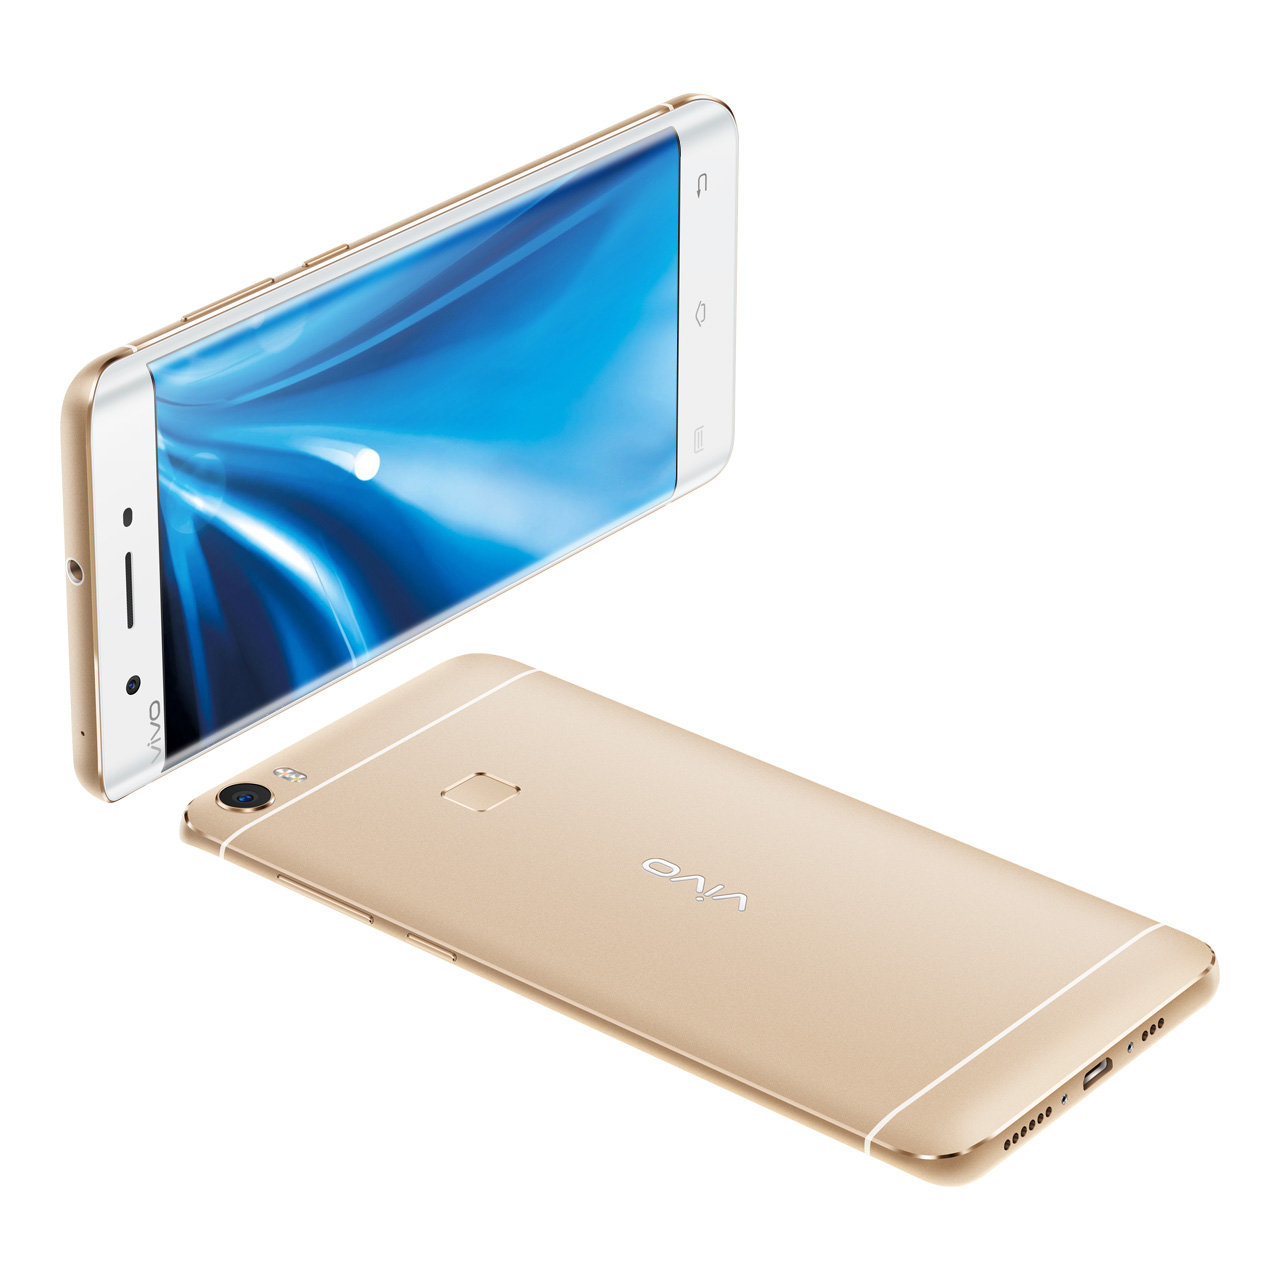 Vivo-Xplay-5-render-4